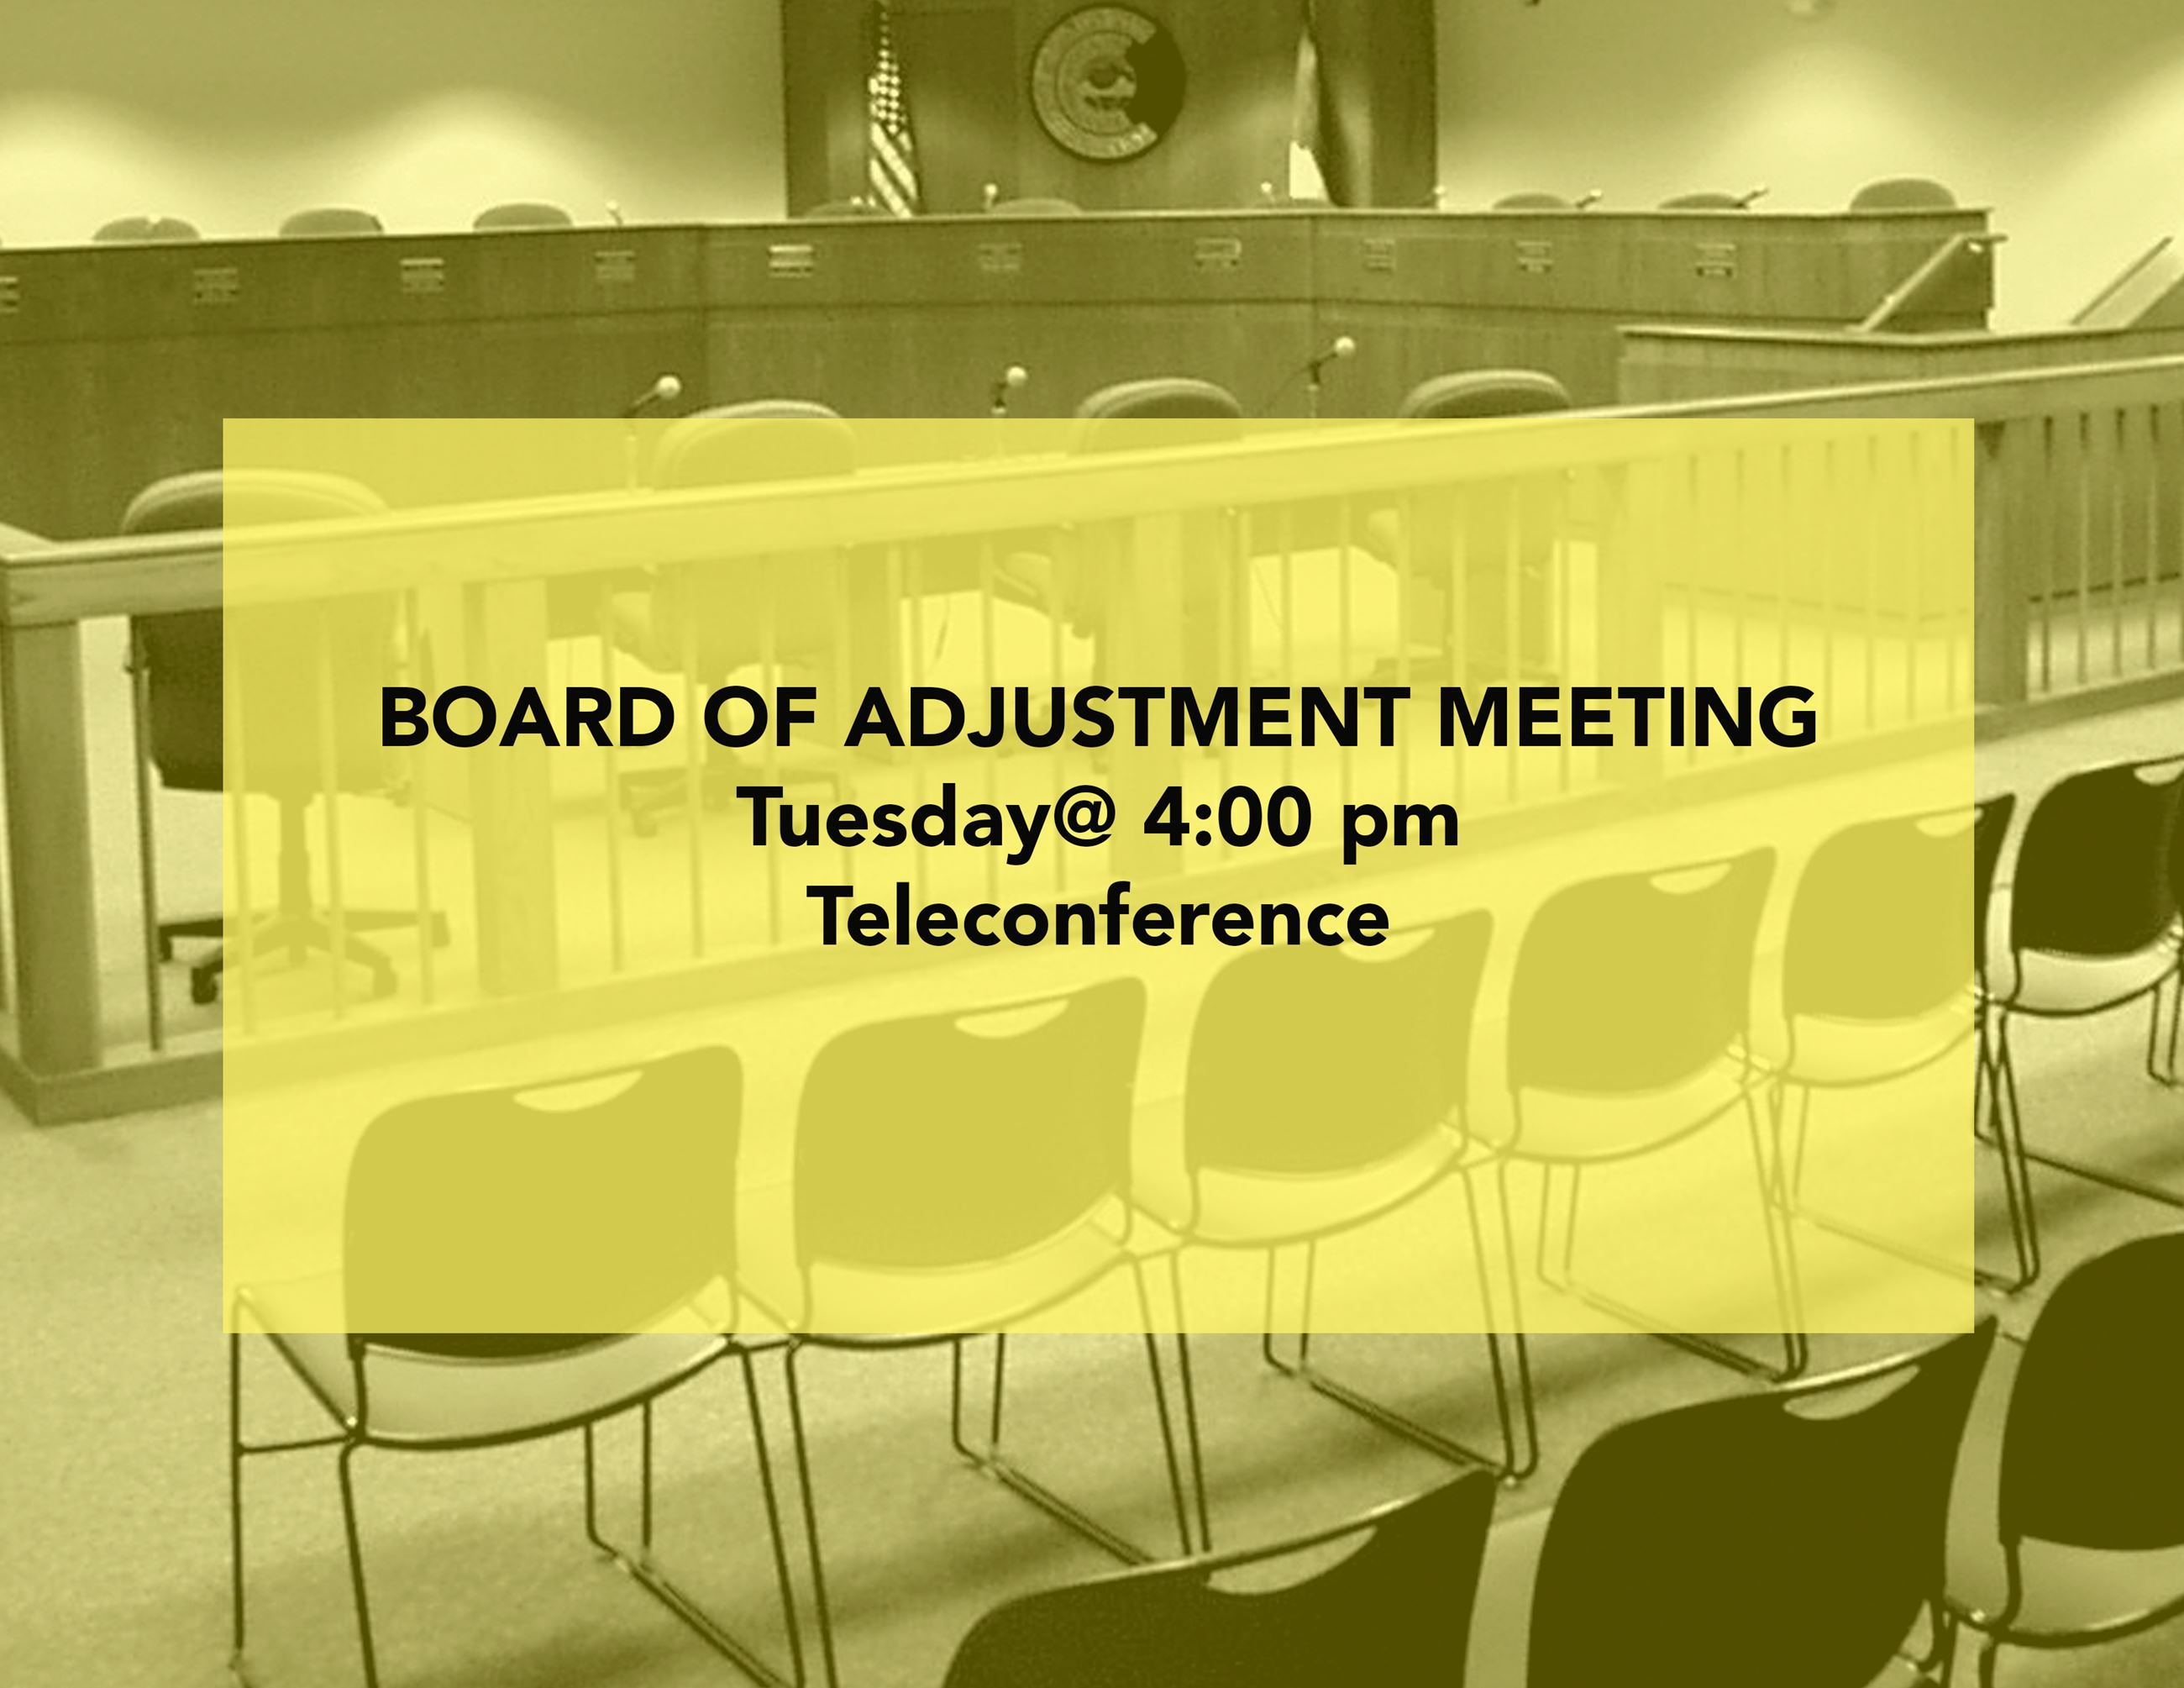 BOA Tuesday Teleconference at 4 pm